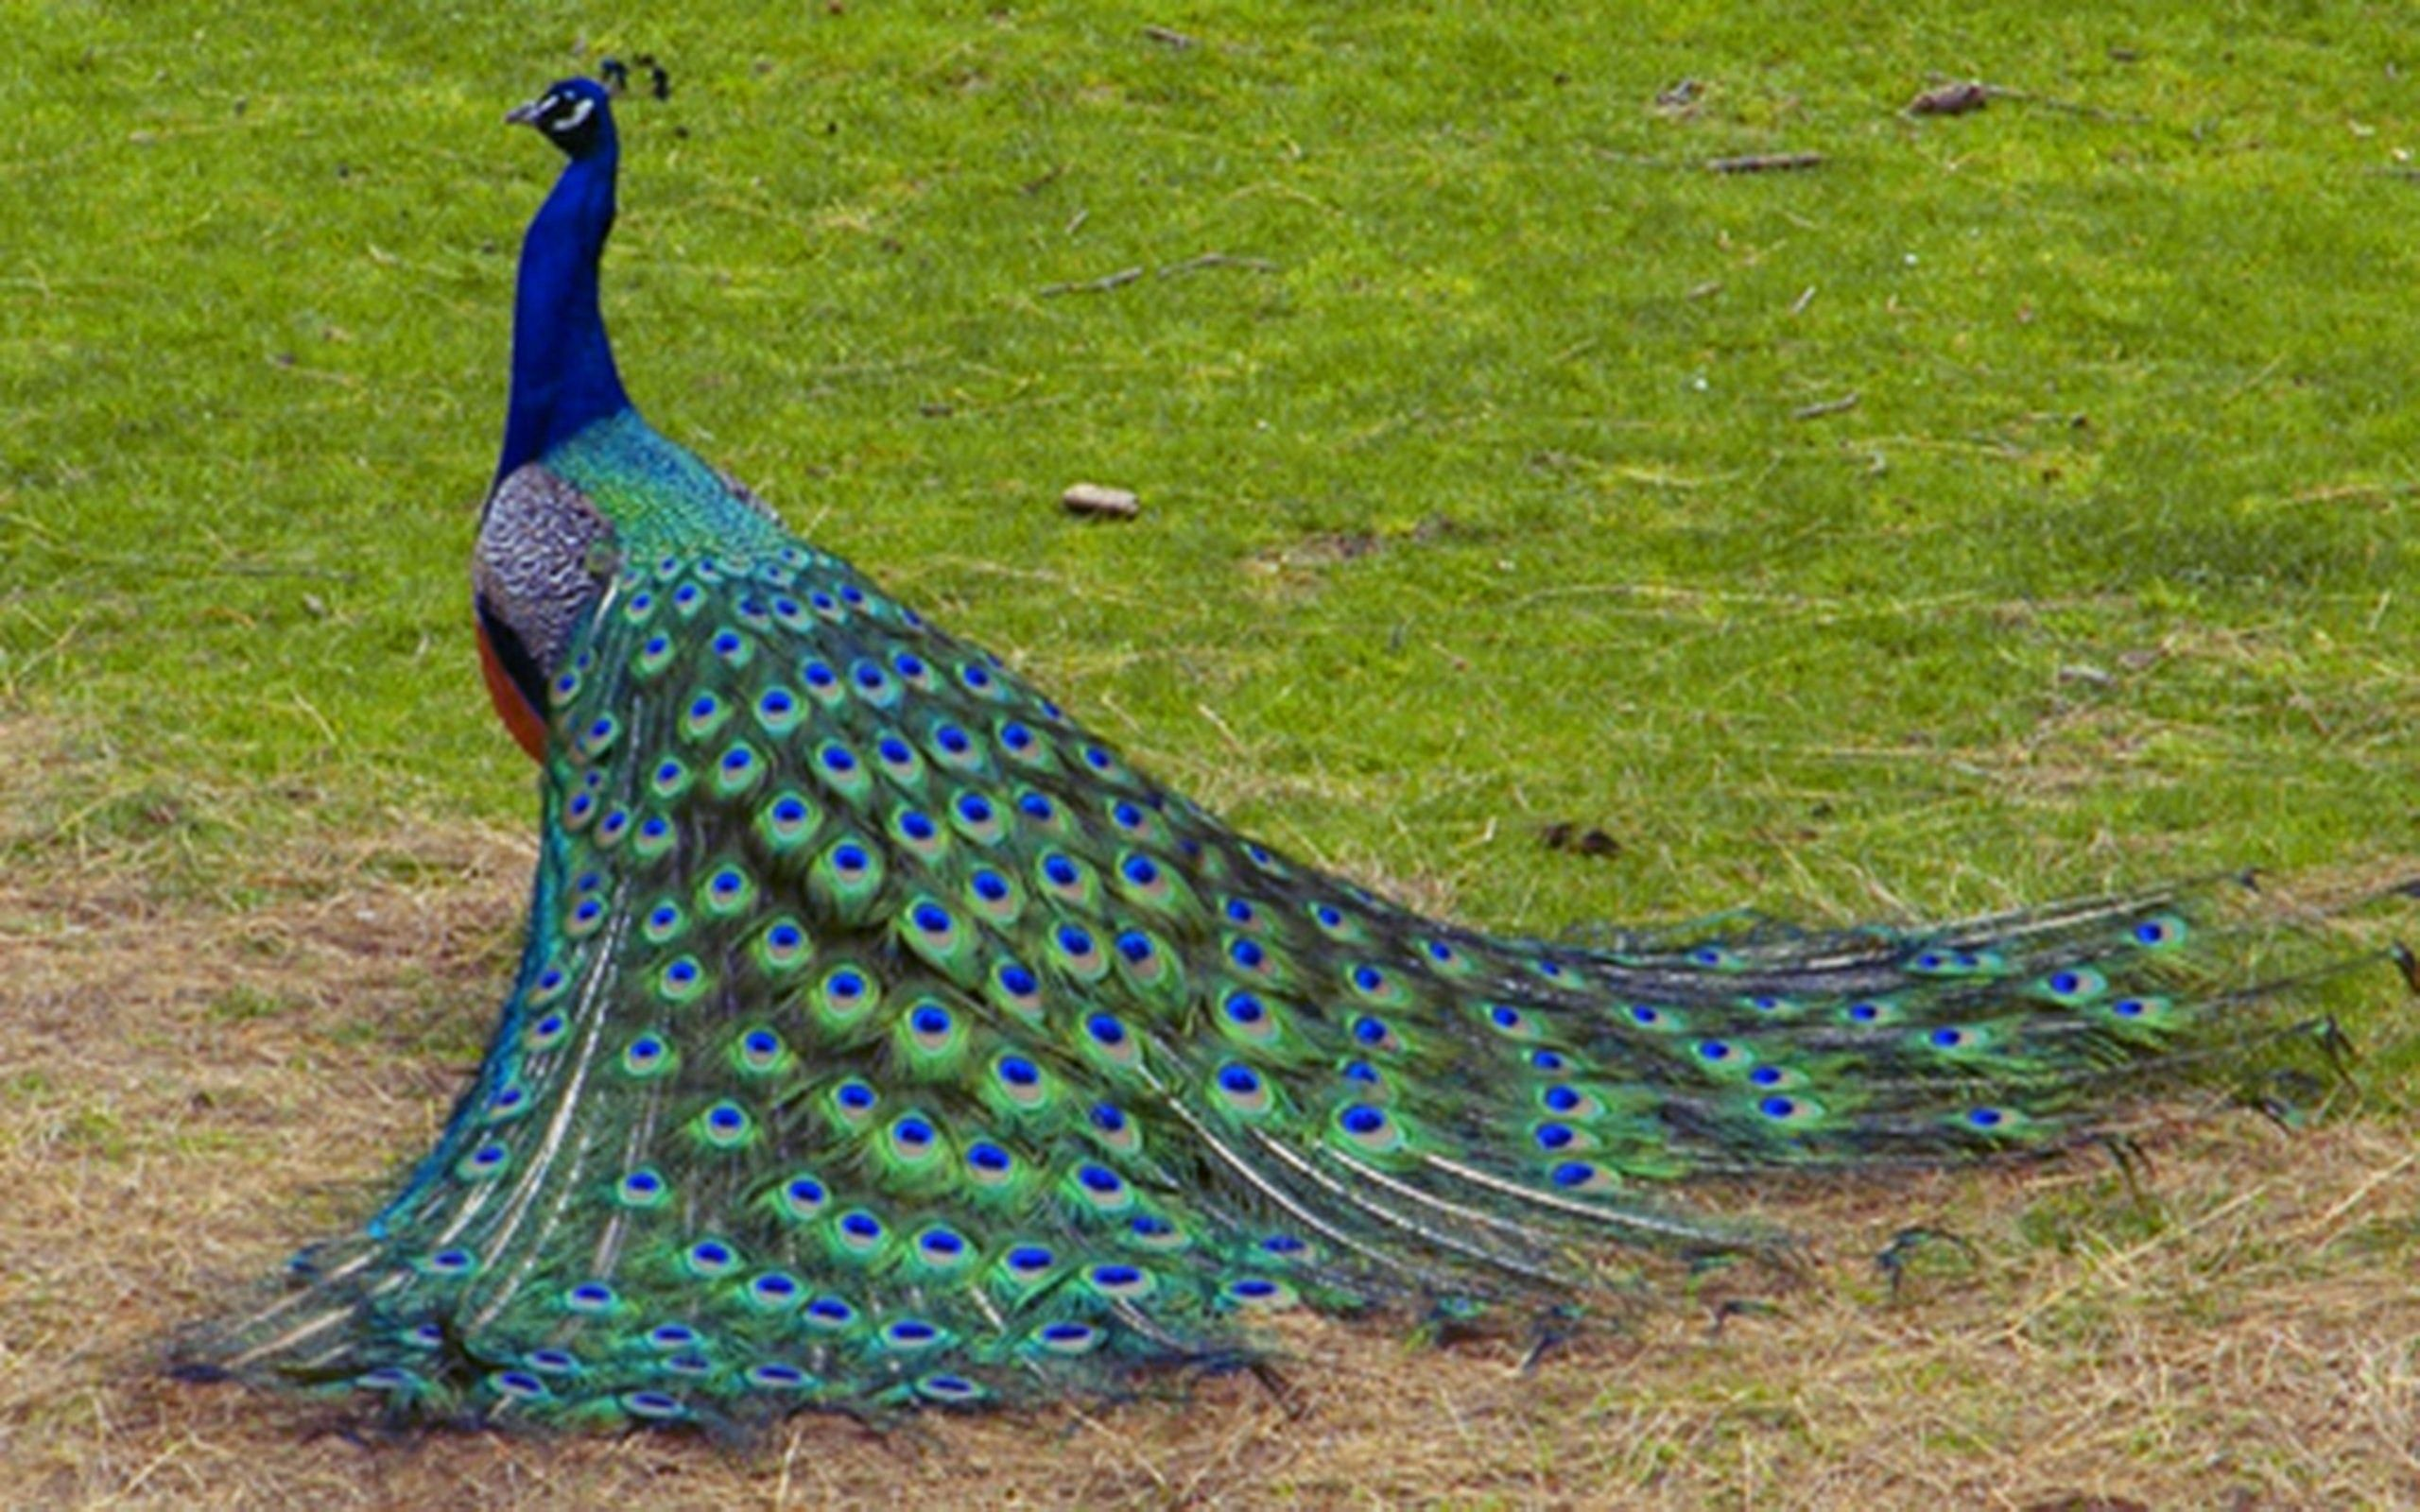 peacock images free download